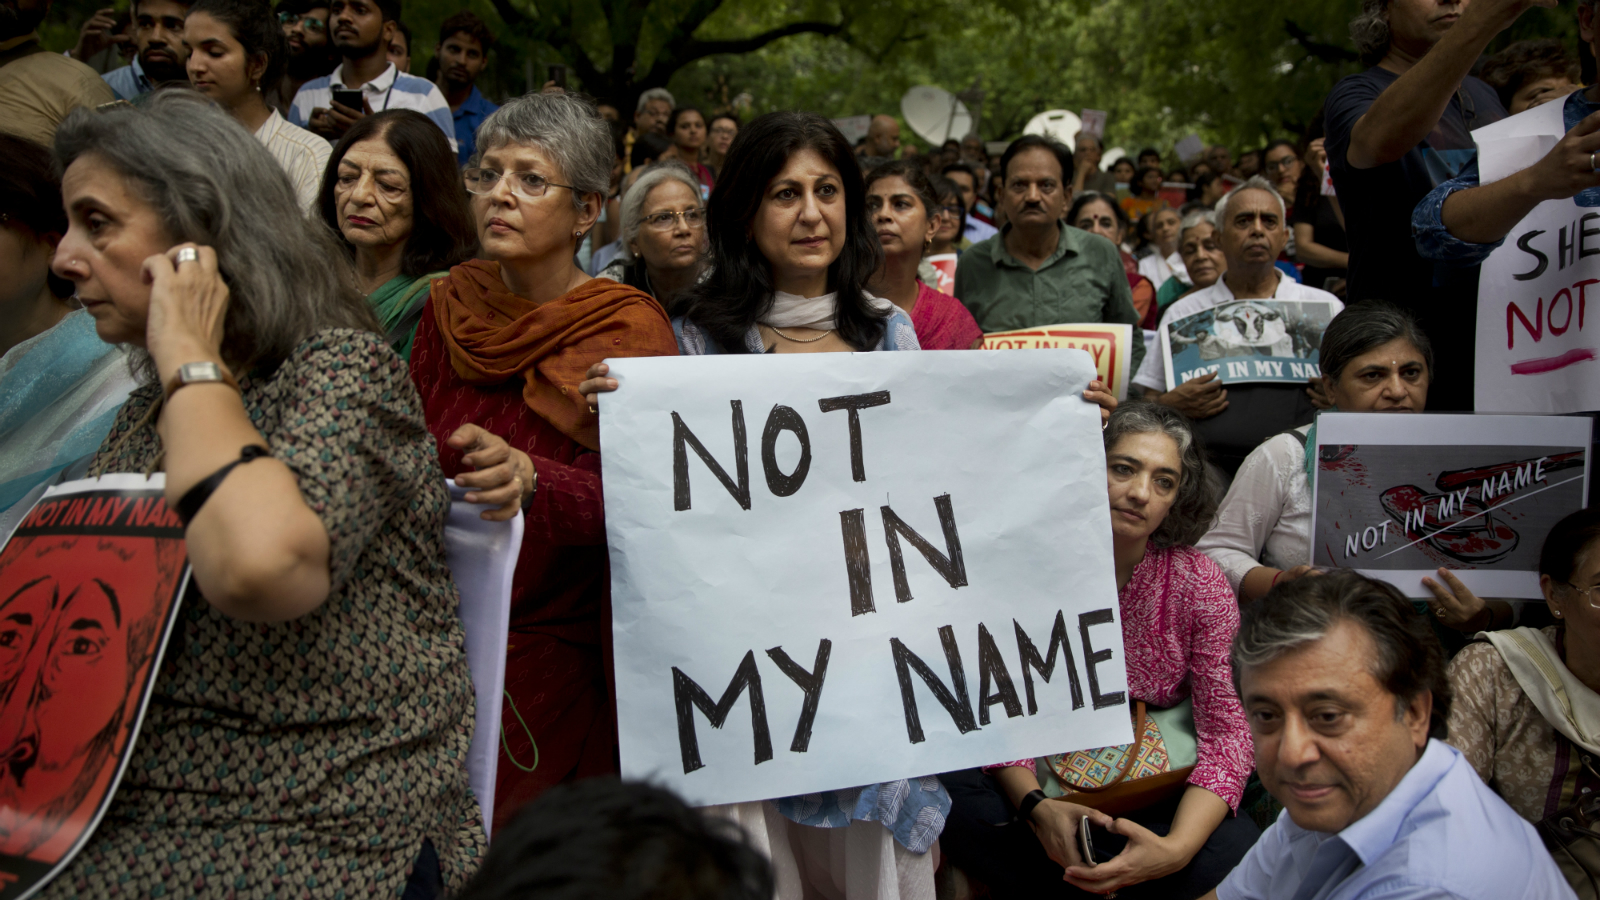 """An Indian woman holds placard and listens to a speaker during a protest against a spate of violent attacks across the country targetting the country's Muslim minority, in New Delhi, India, Wednesday, June 28, 2017. Carrying placards that said """"not in my name,"""" the protestors on Wednesday decried the silence of India's Hindu rightwing government in the face of the public lynchings and violent attacks on at least a dozen Muslim men and boys since it came to power in 2014."""